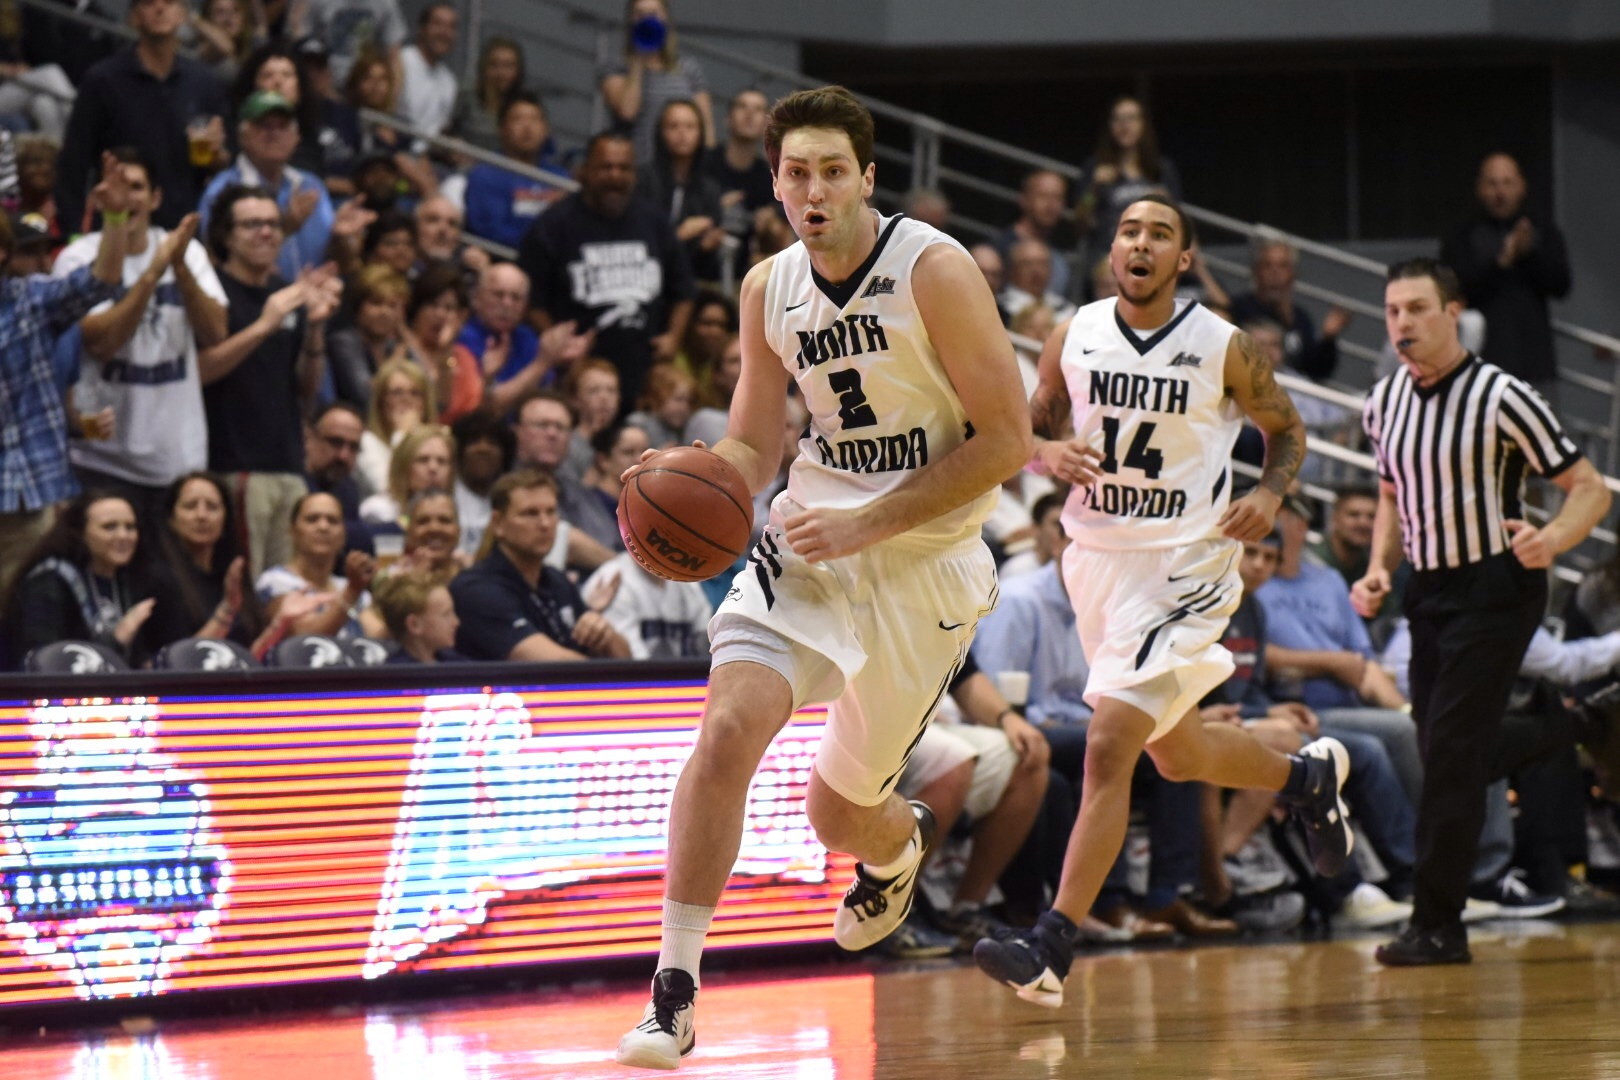 UNF basketball player